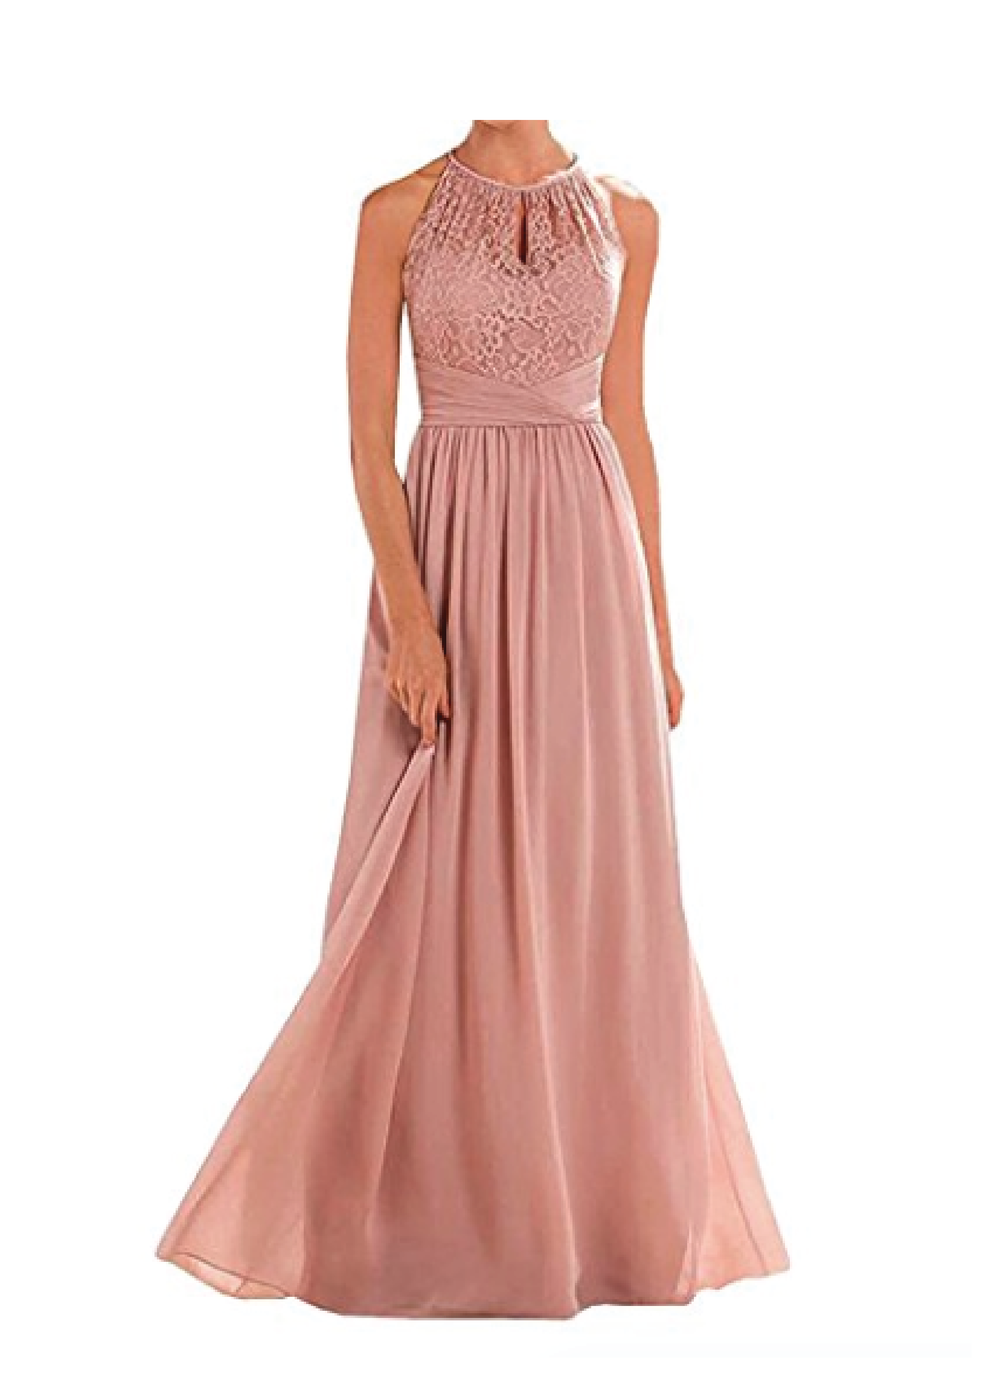 Top Bridesmaid Dresses Under 100-02.png